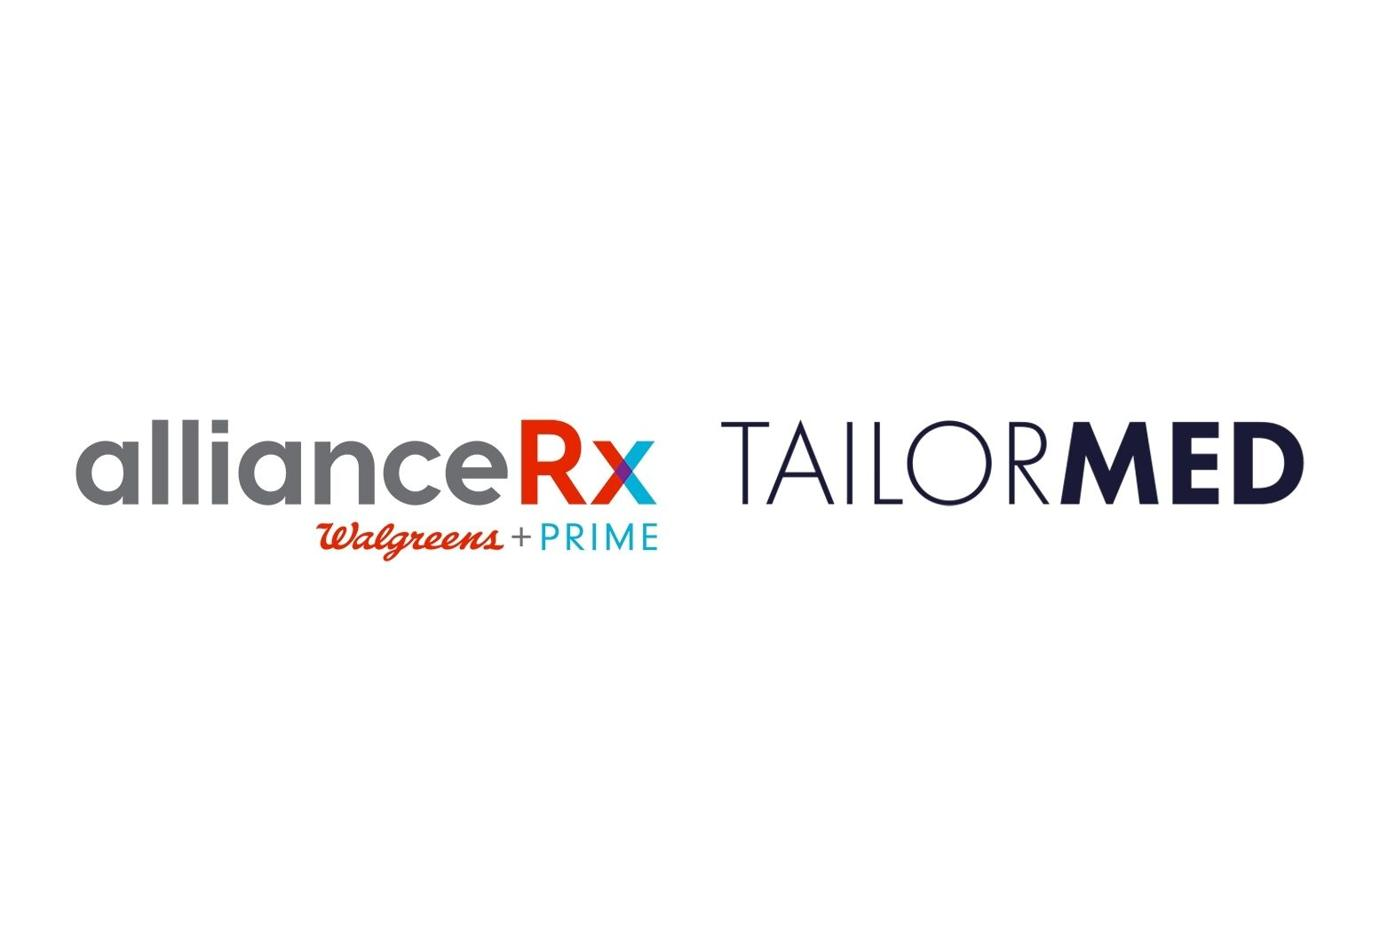 TailorMed, AllianceRx Walgreens Prime Collaborates to Reduce Patient Out-of-Pocket Costs